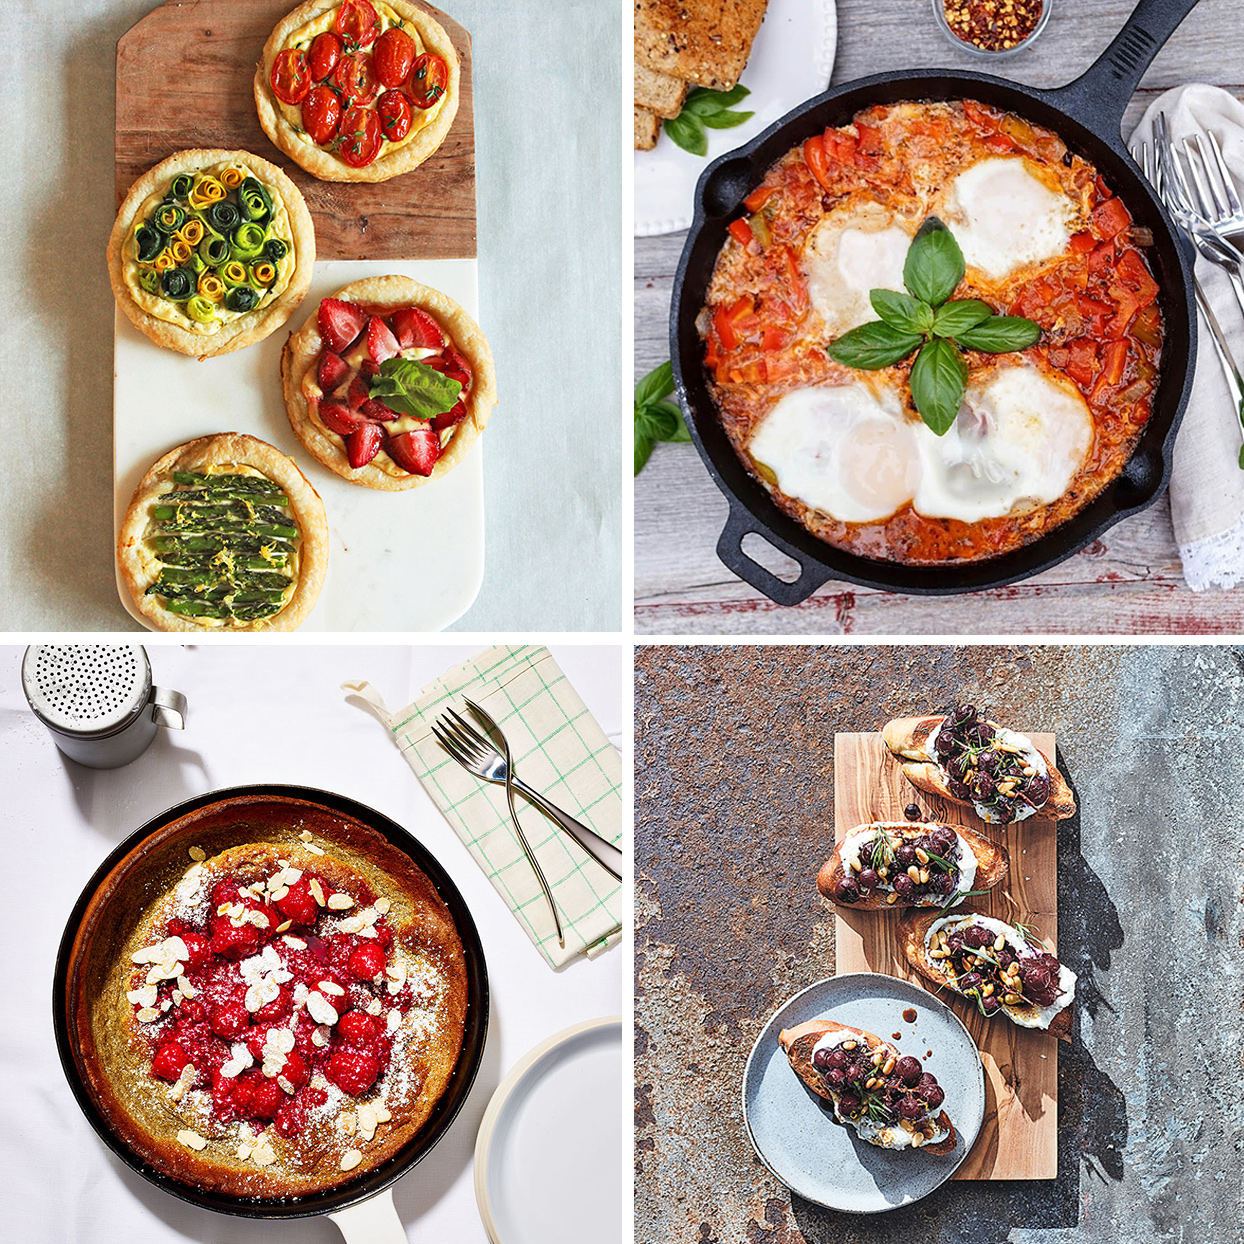 healthy brunch recipes and ideas